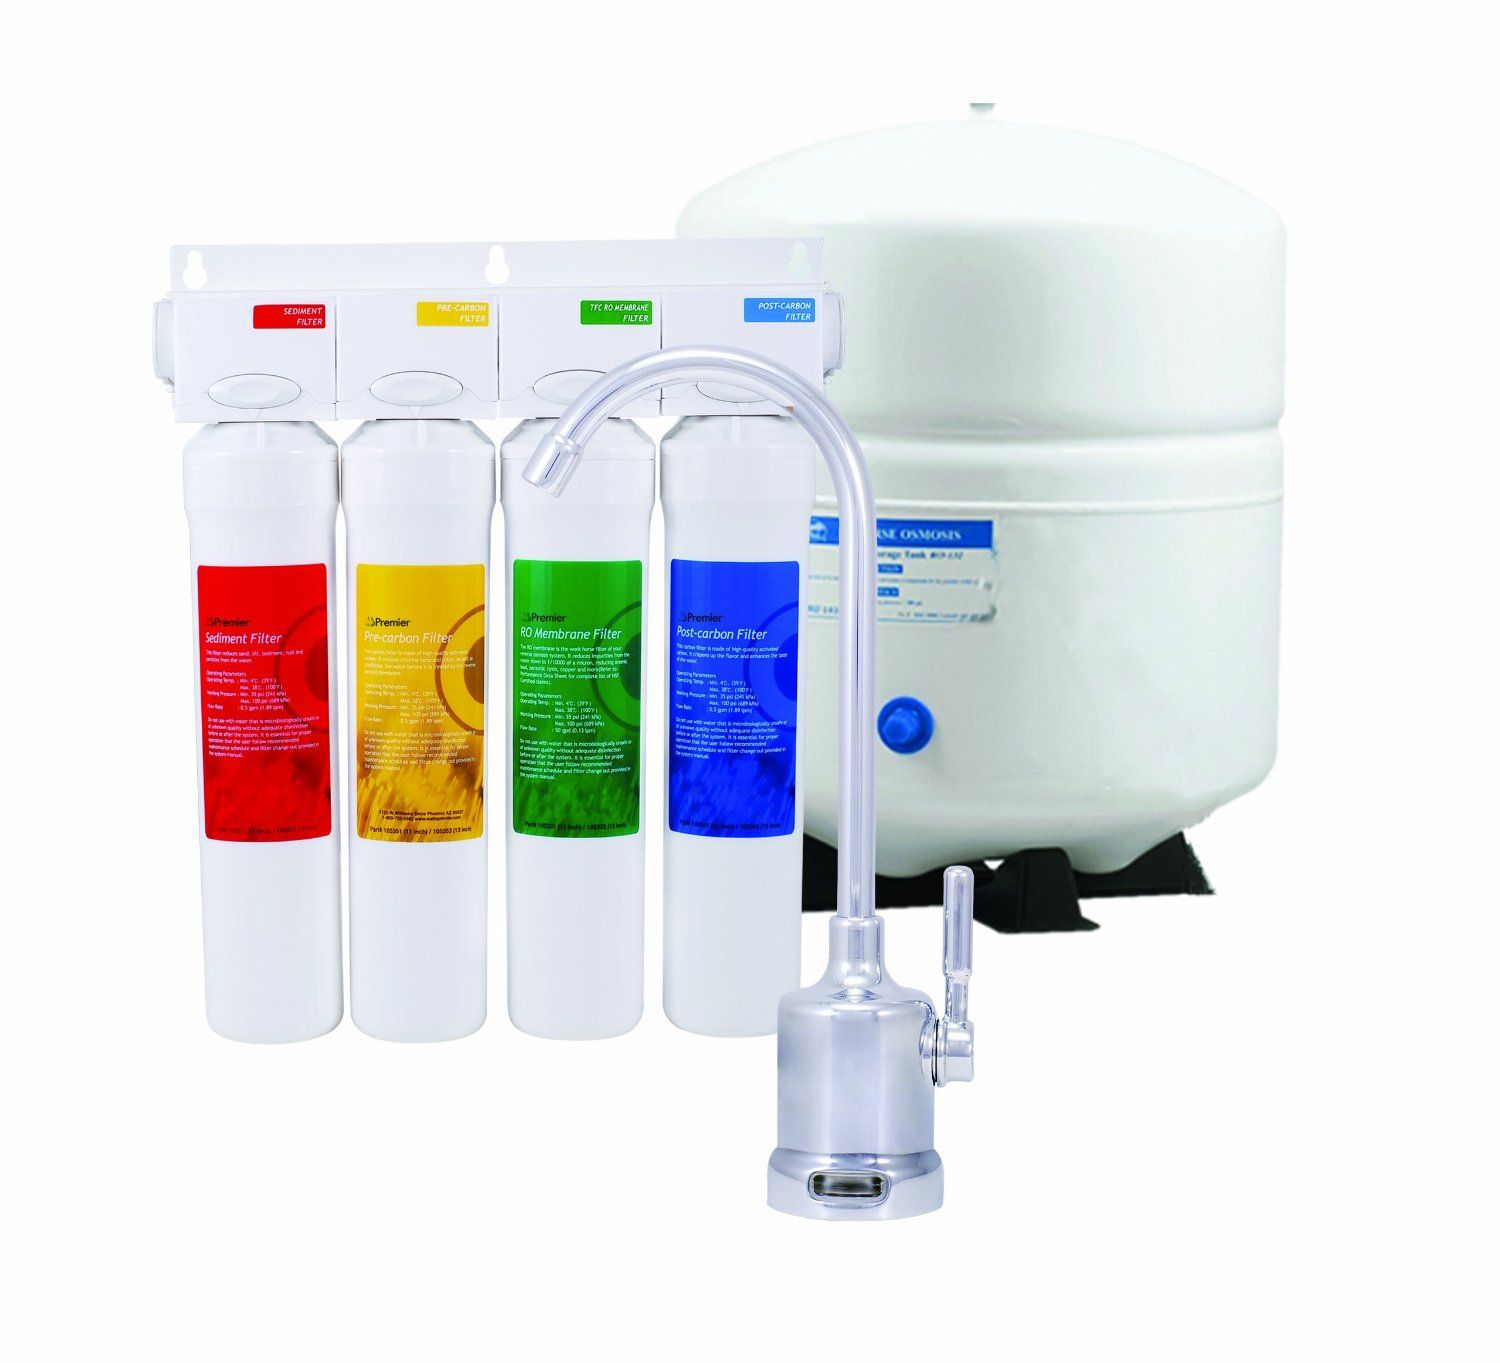 Reverse Osmosis Water Filter Systems Get The Purist Cleanest Water ...